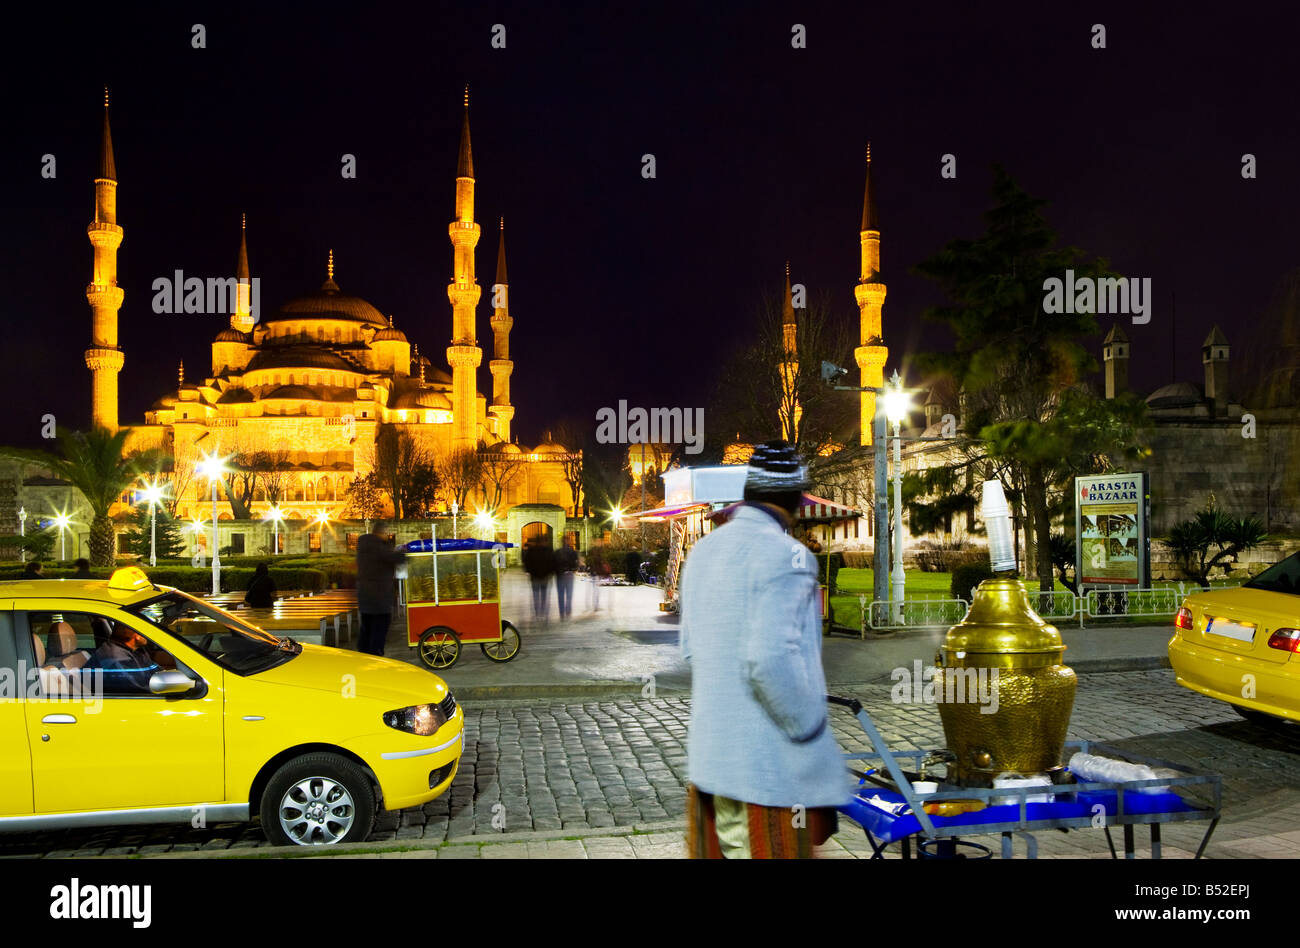 Taxi drivers wait along with simit Turkish bagels and tea vendors in front of the Blue Mosque. Turkey, Istanbul, Stock Photo